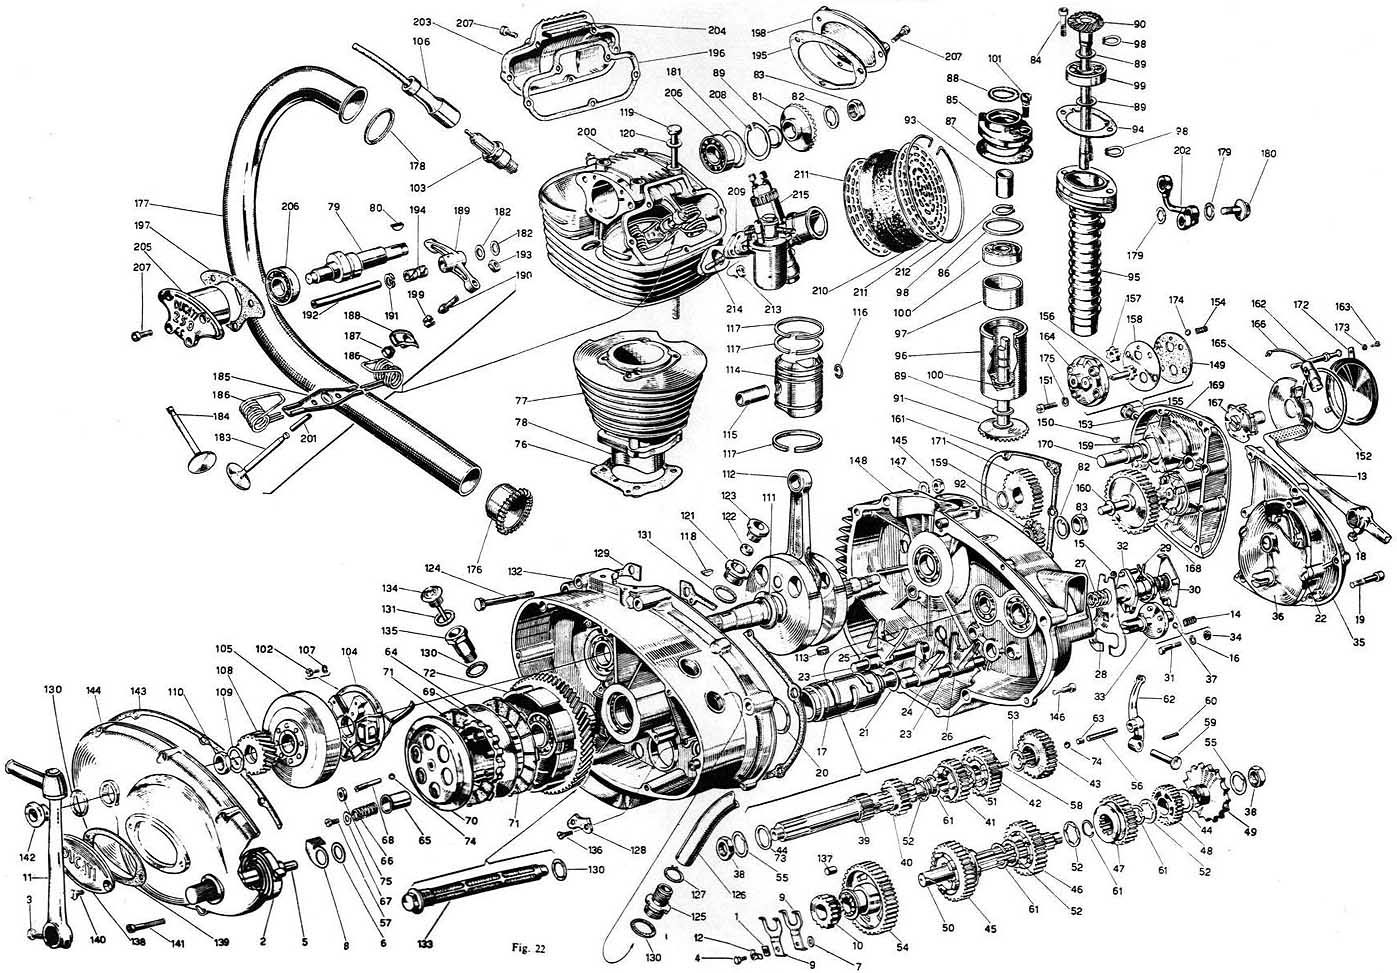 Ducati 250 GT Single Schematic Cutaways Pinterest – Diagram Of Moto Guzzi Engine